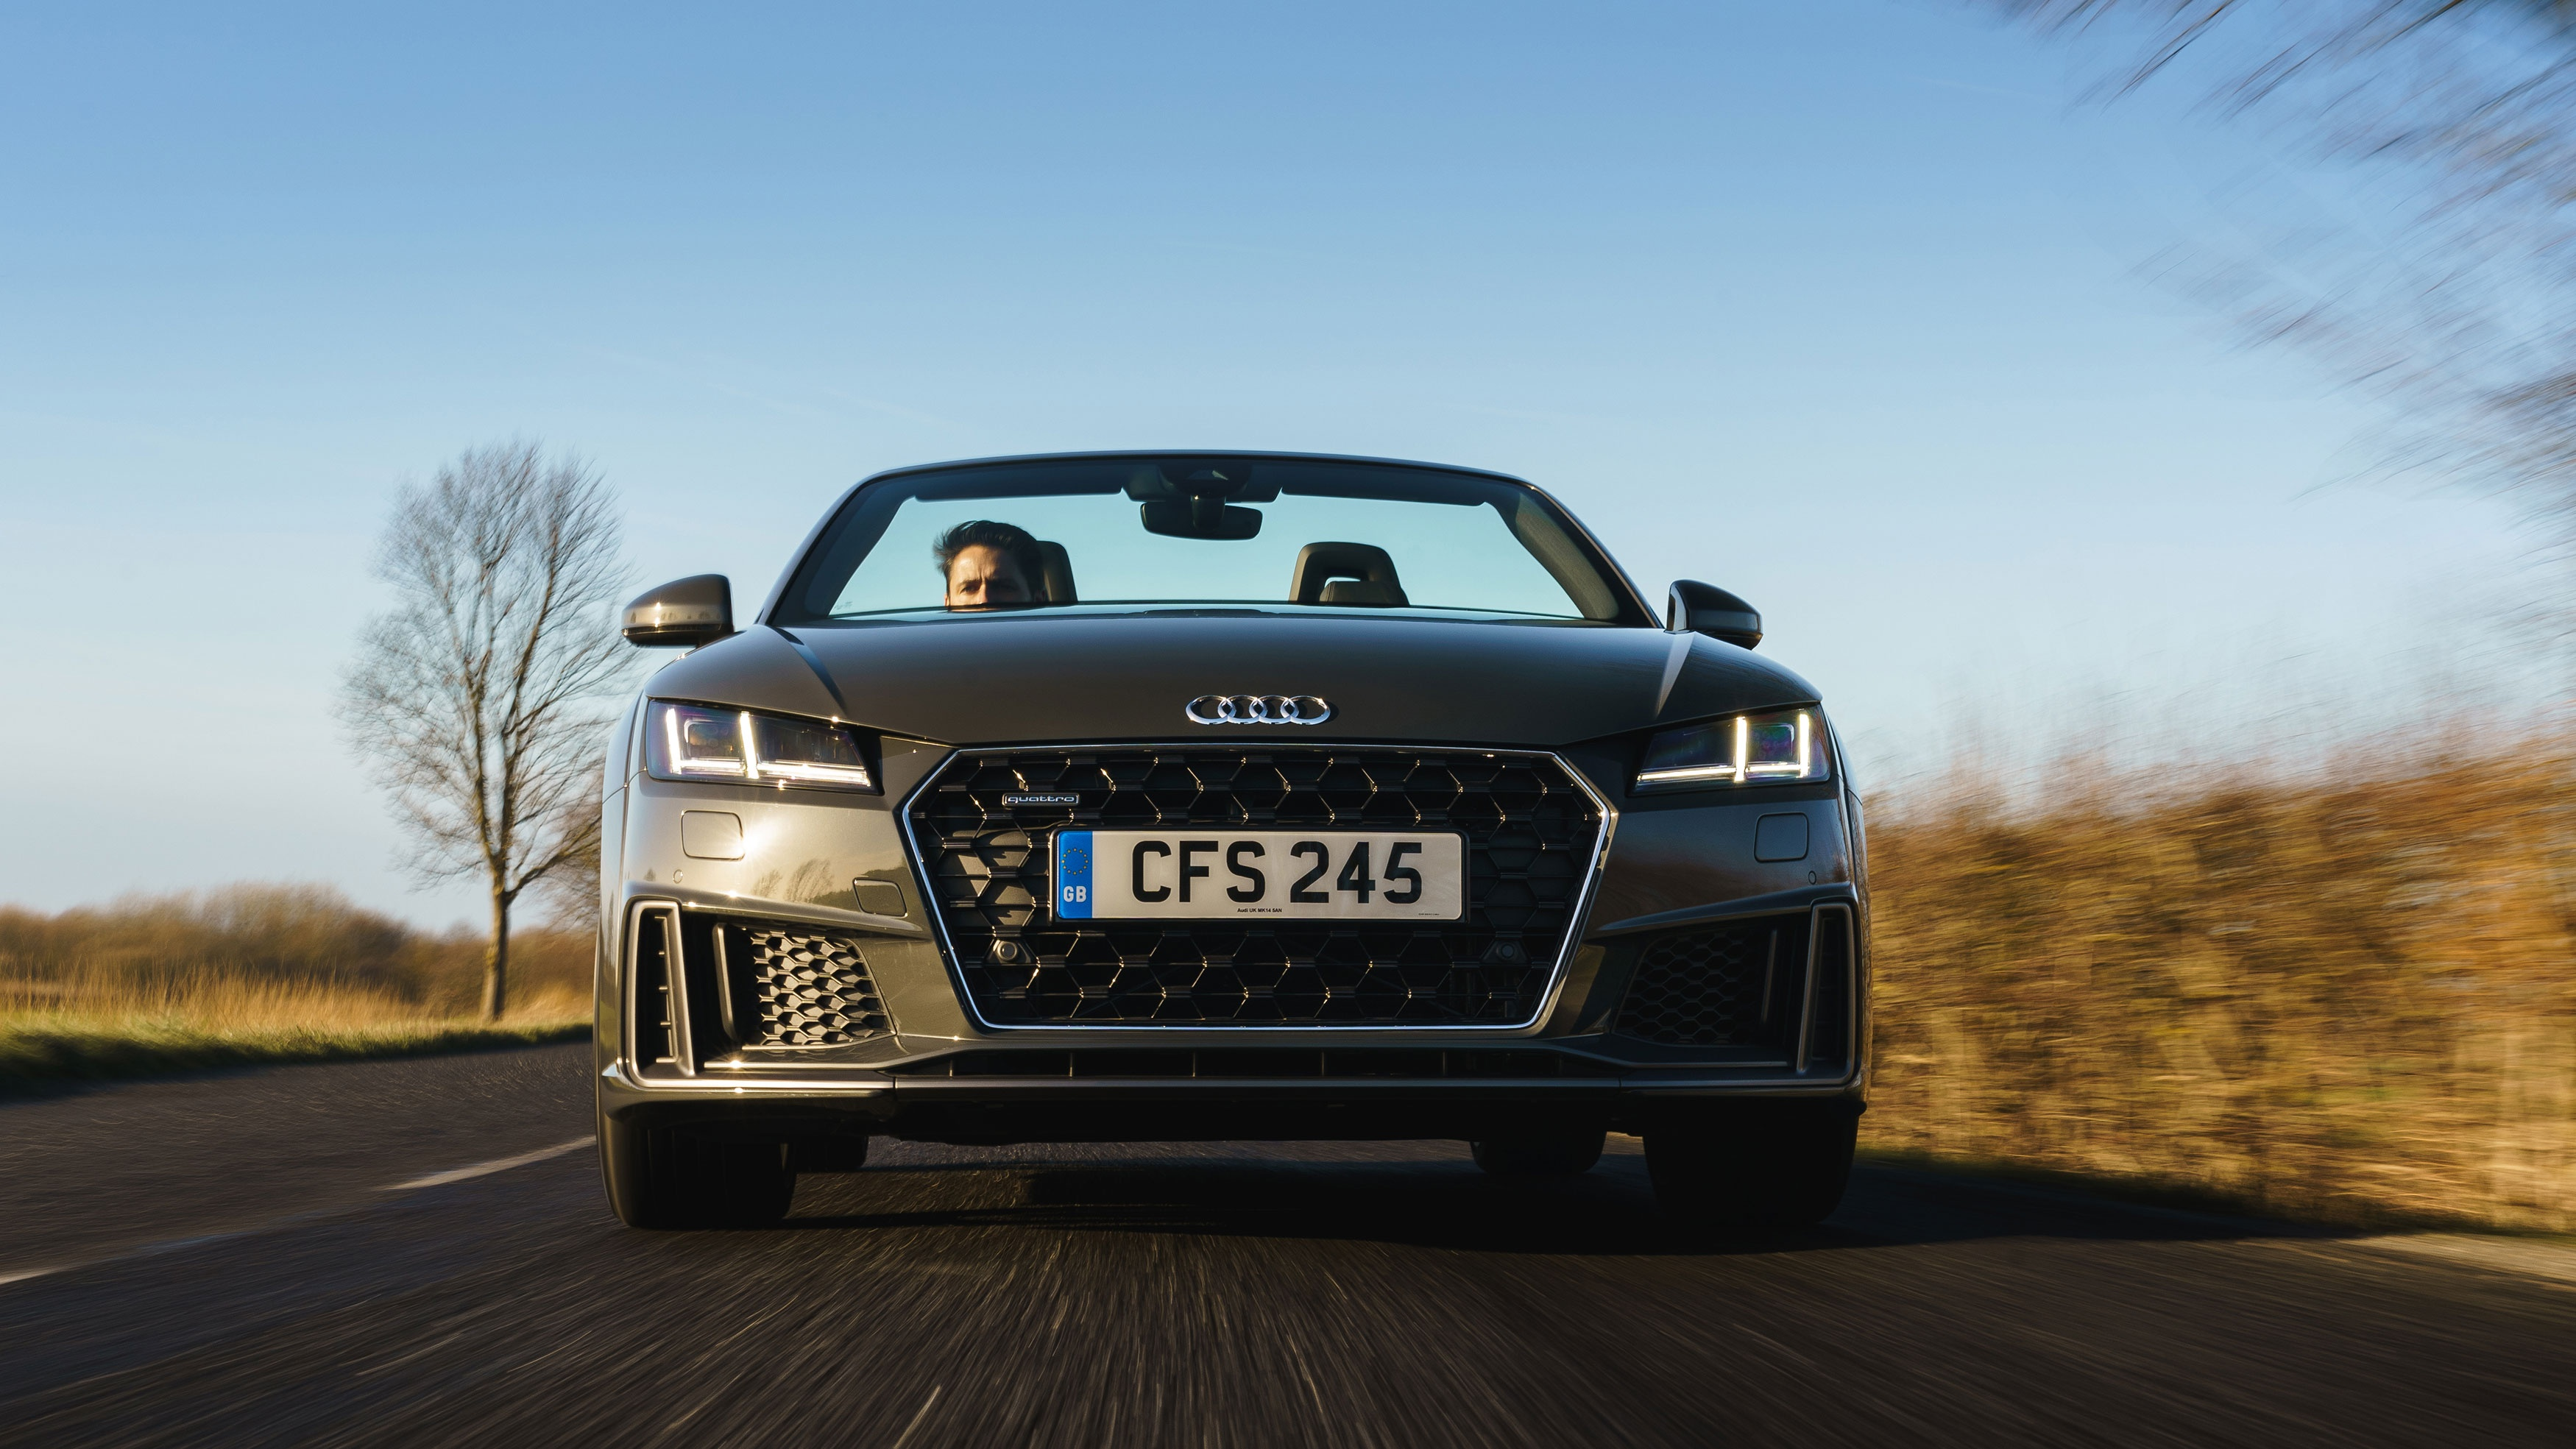 Modified Audi for Sale Uk New New Used Audi Tt Coupes Convertibles for Sale Auto Trader-2447 Of Best Of Modified Audi for Sale Uk